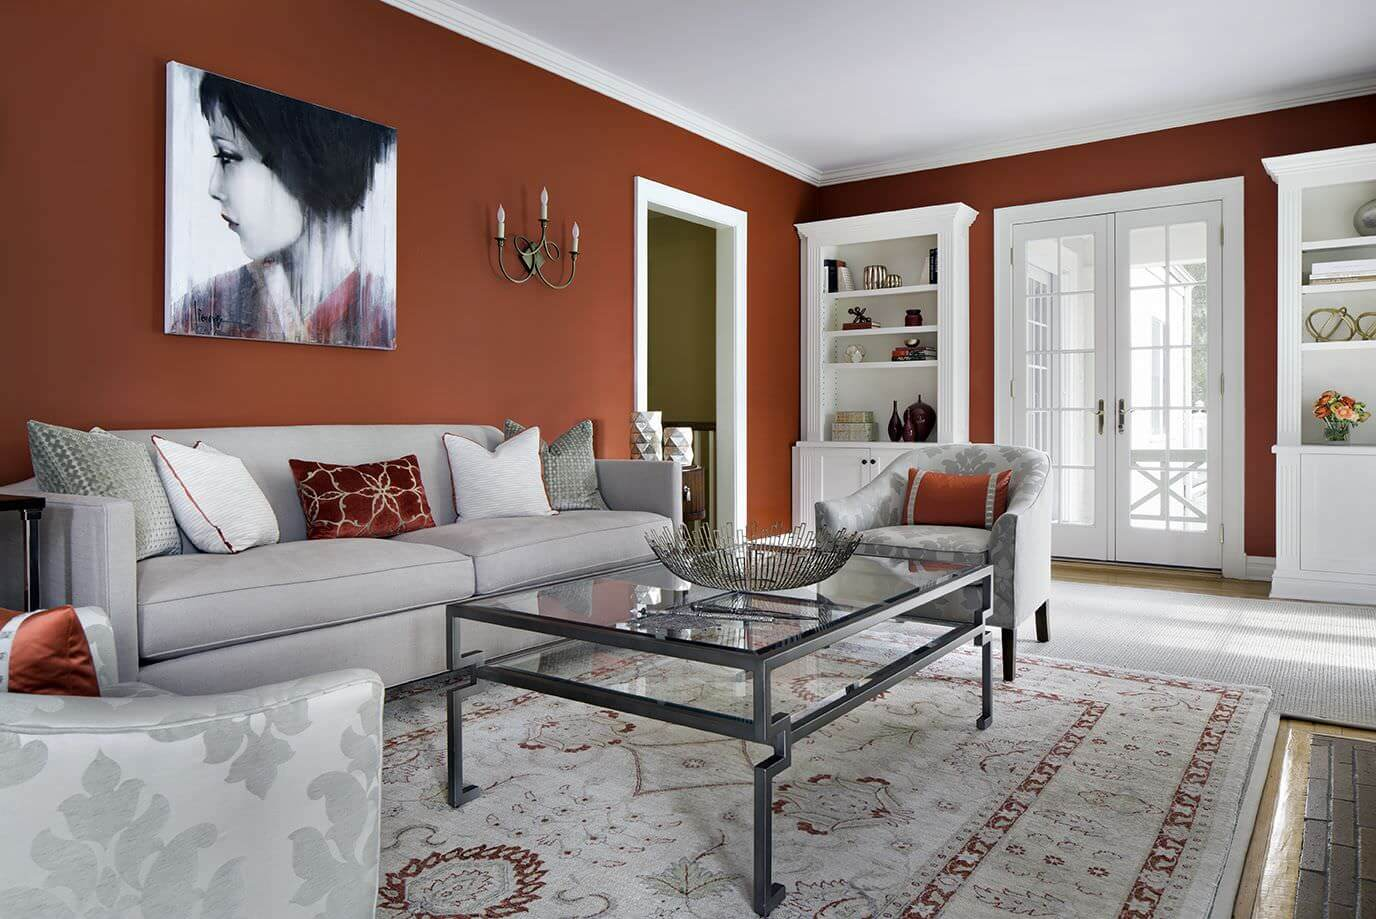 Red Living Room Color Schemes Although red can boost appetite and even bring out other emotions, using  subtle and more